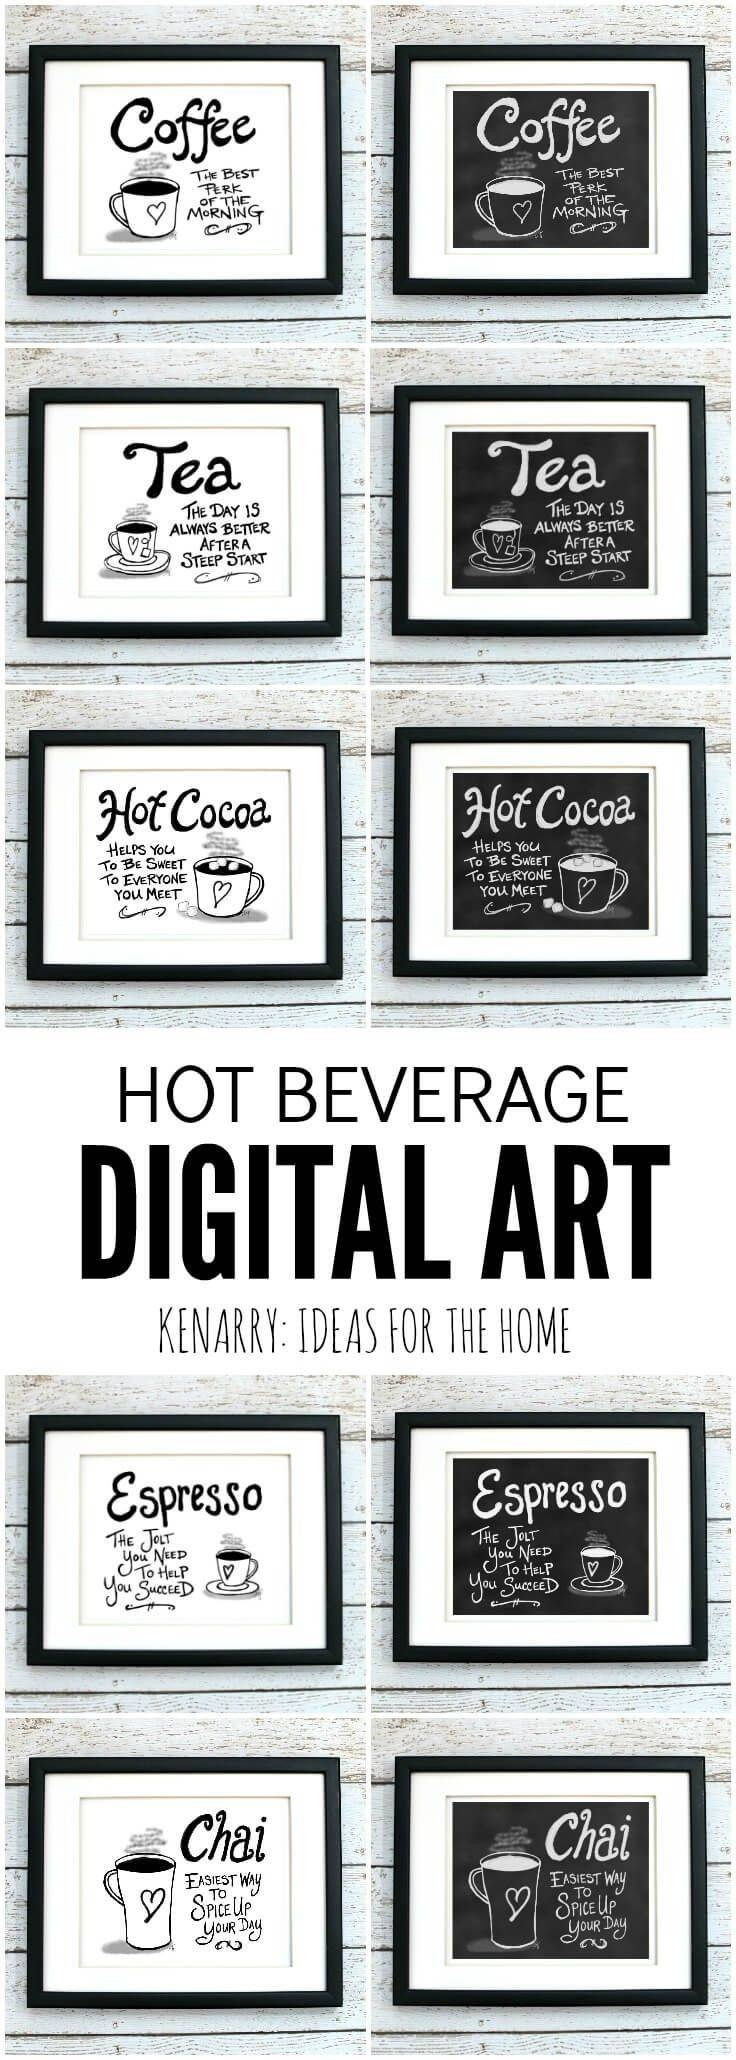 25+ Unique Coffee Wall Art Ideas On Pinterest | Coffe Shop For Best And Newest Cafe Latte Kitchen Wall Art (View 1 of 30)